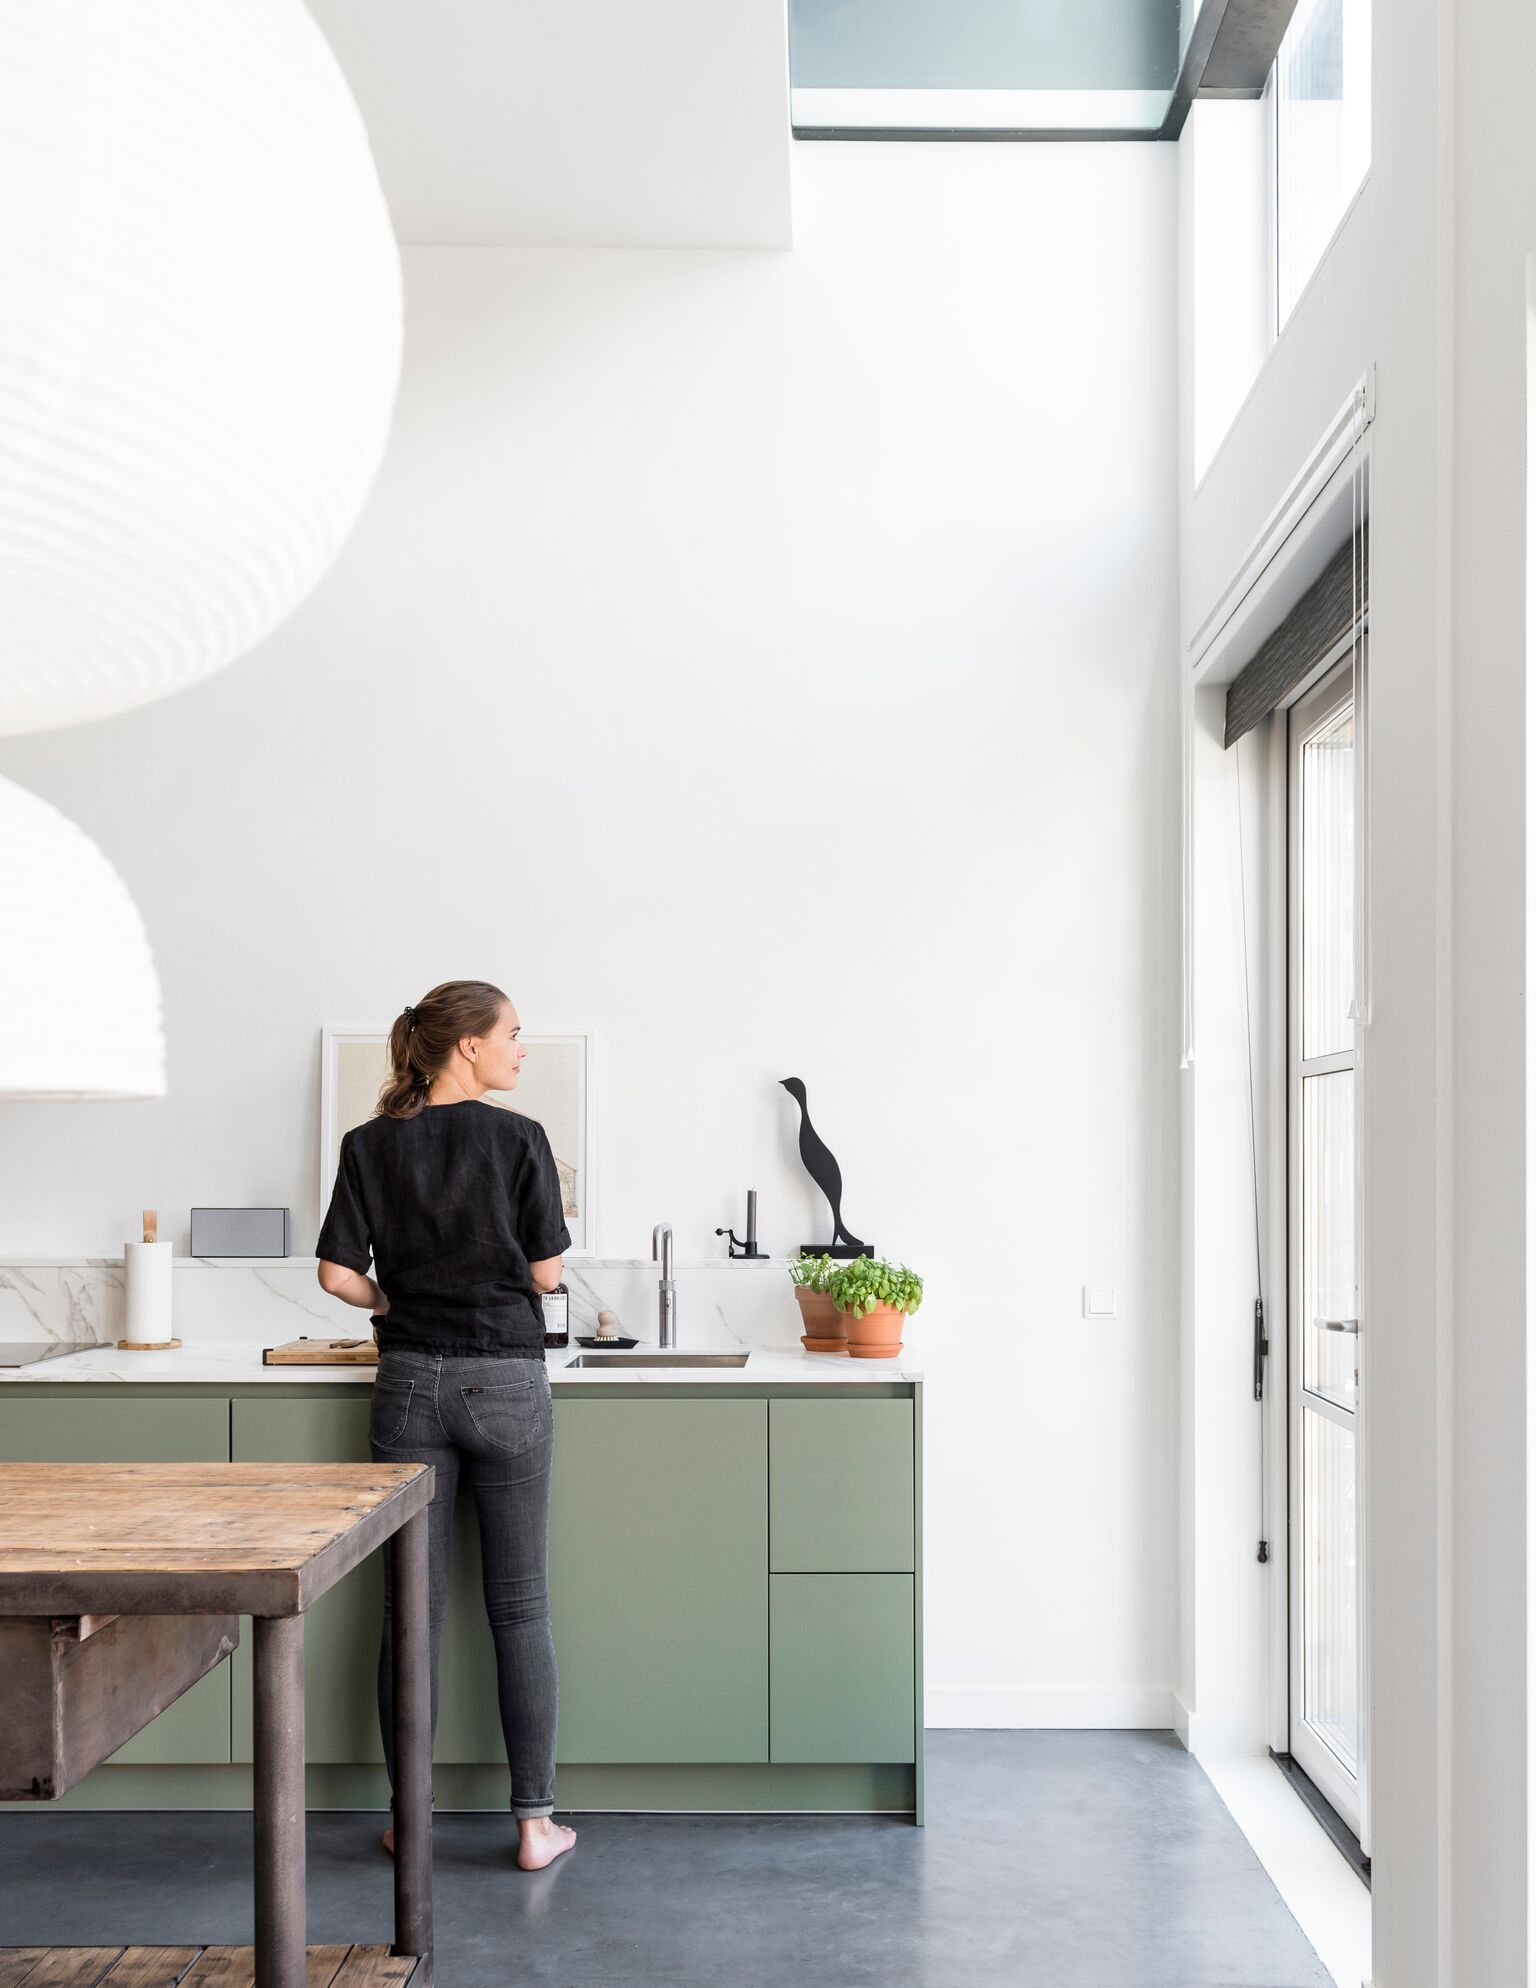 interiorproject_Amsterdam-april and May-03.jpg